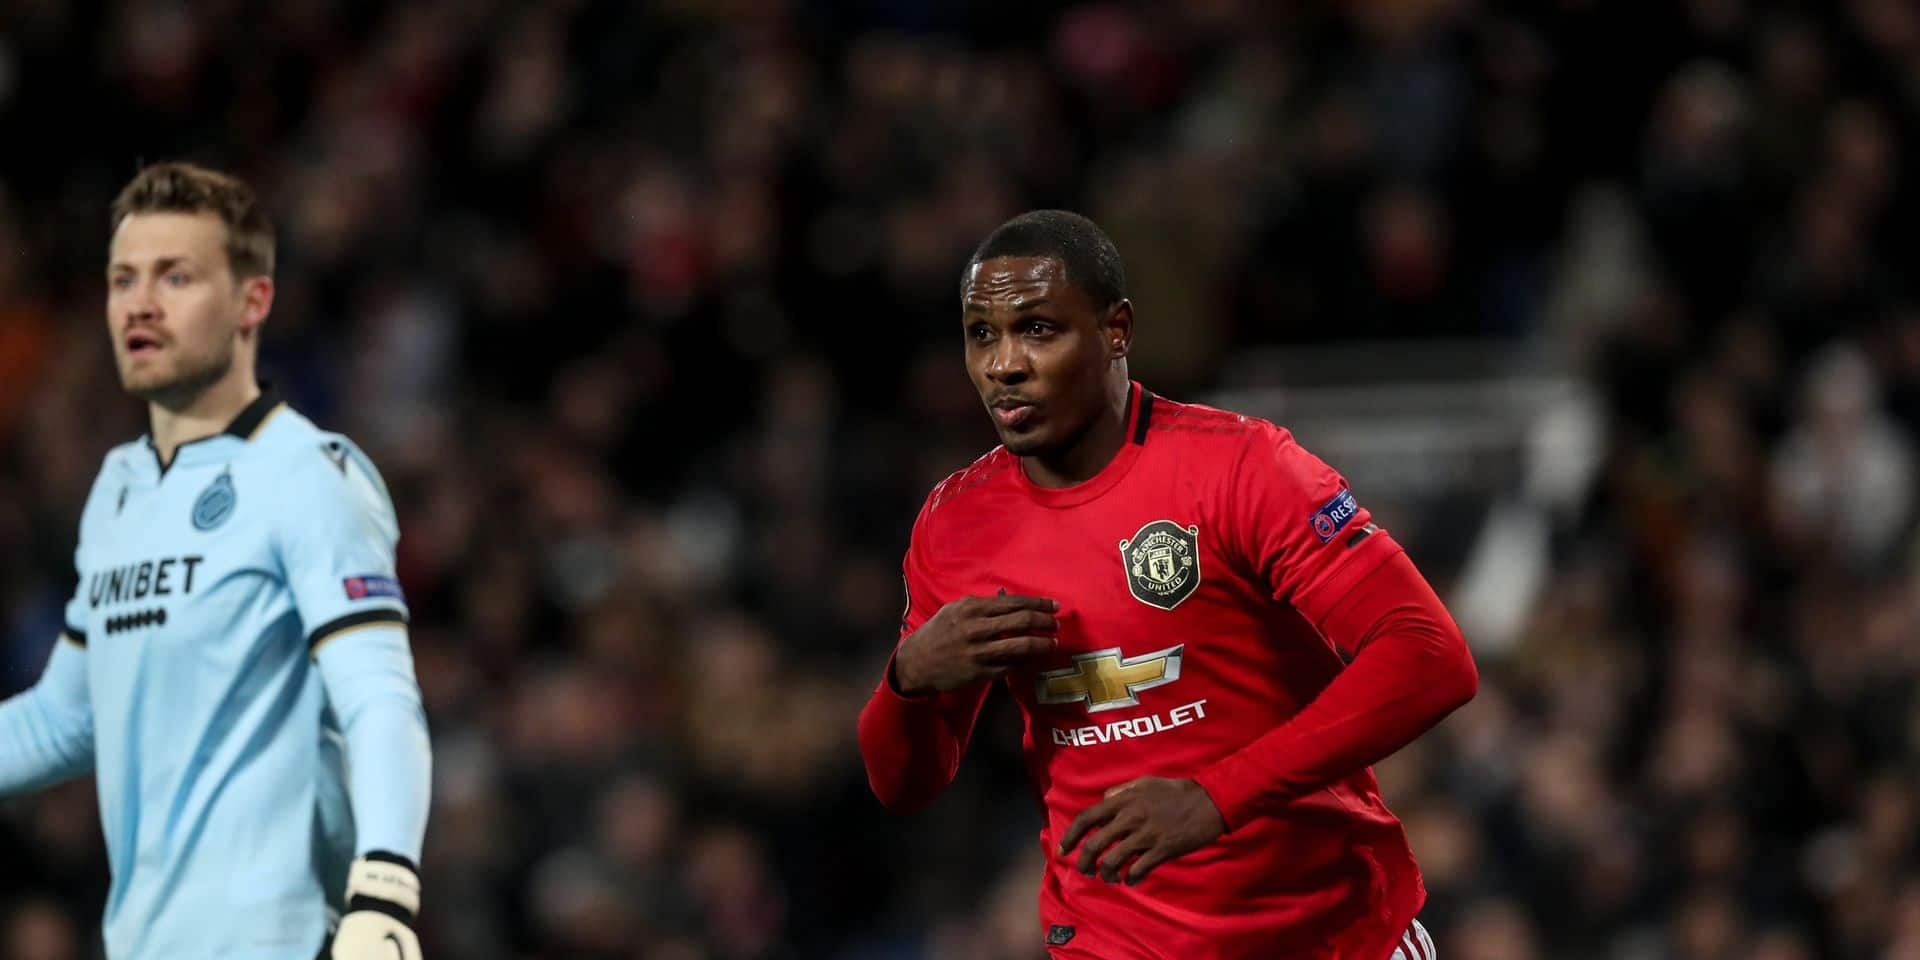 Manchester United prolonge le prêt d'Odion Ighalo